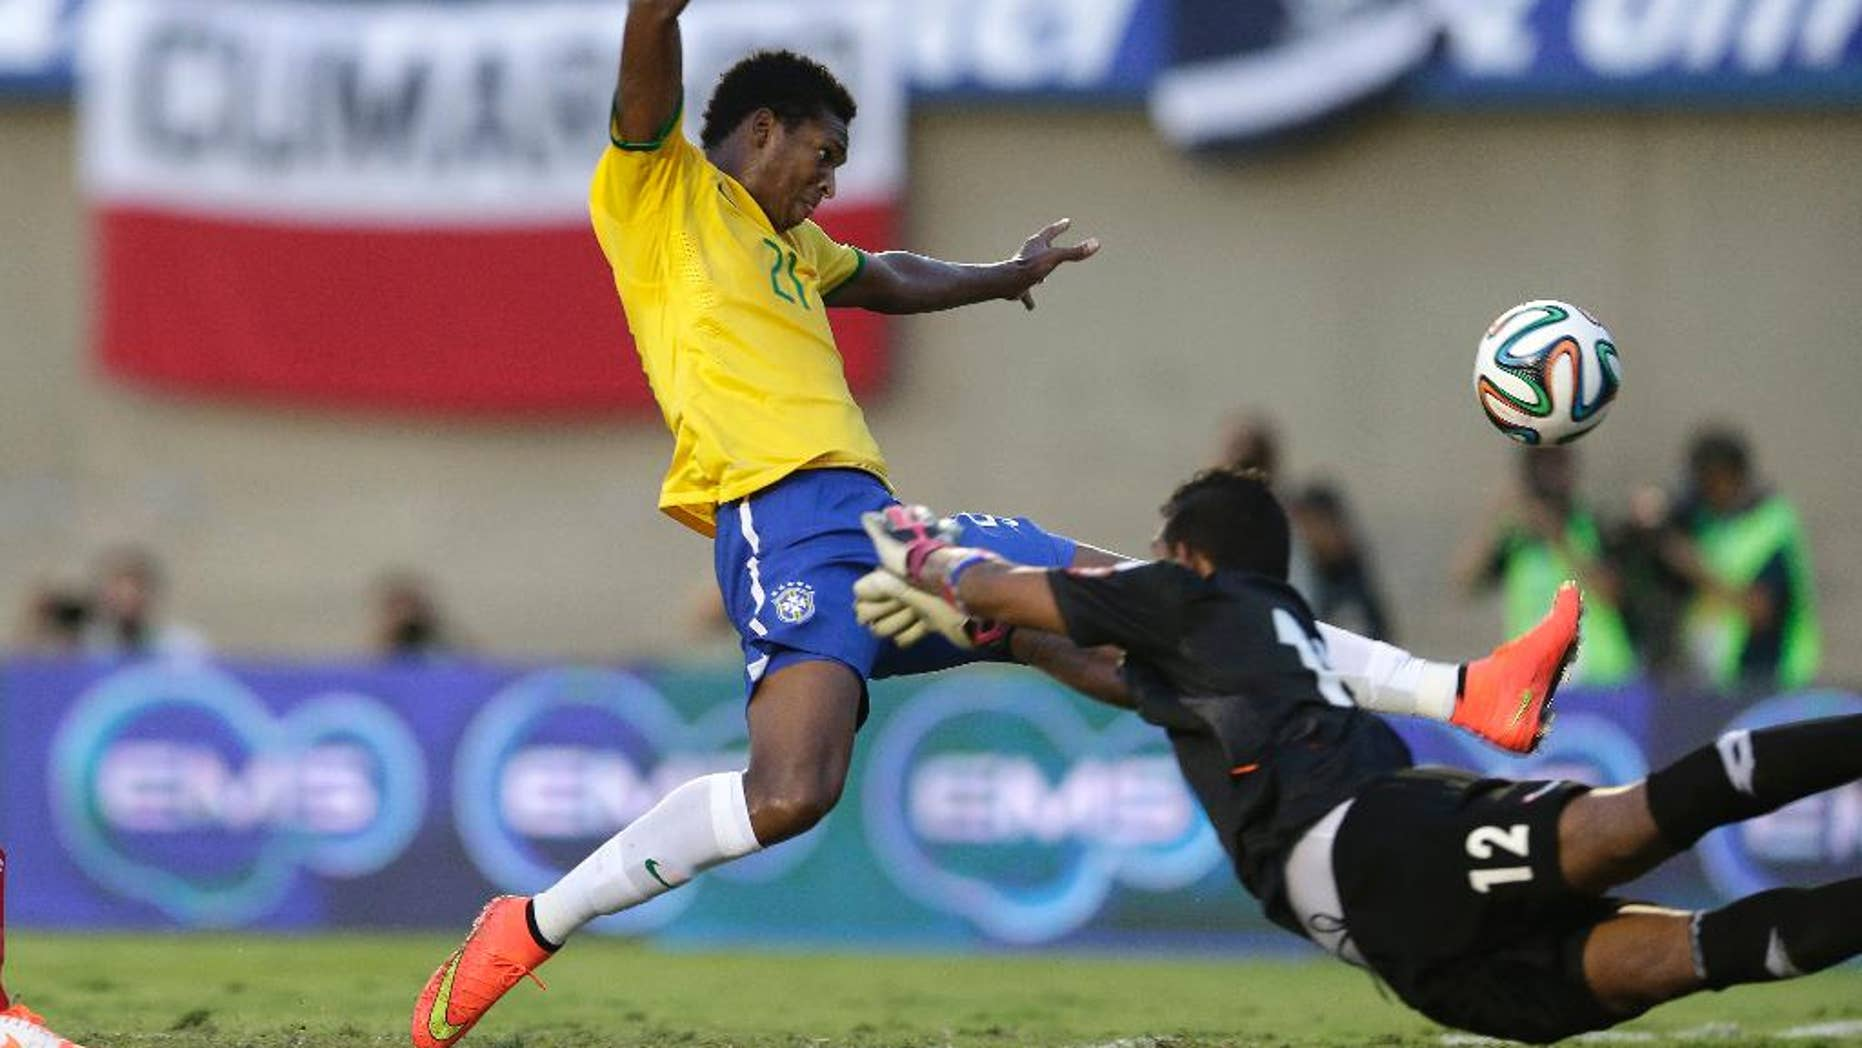 Brazil's Jo, top, fights for the ball with Panama's goalkeeper Jose Calderon during a friendly soccer match at the Serra Dourada stadium in Goiania, Brazil, Tuesday, June 3, 2014.  Brazil is preparing for the World Cup soccer tournament that starts on June 12. (AP Photo/Andre Penner)